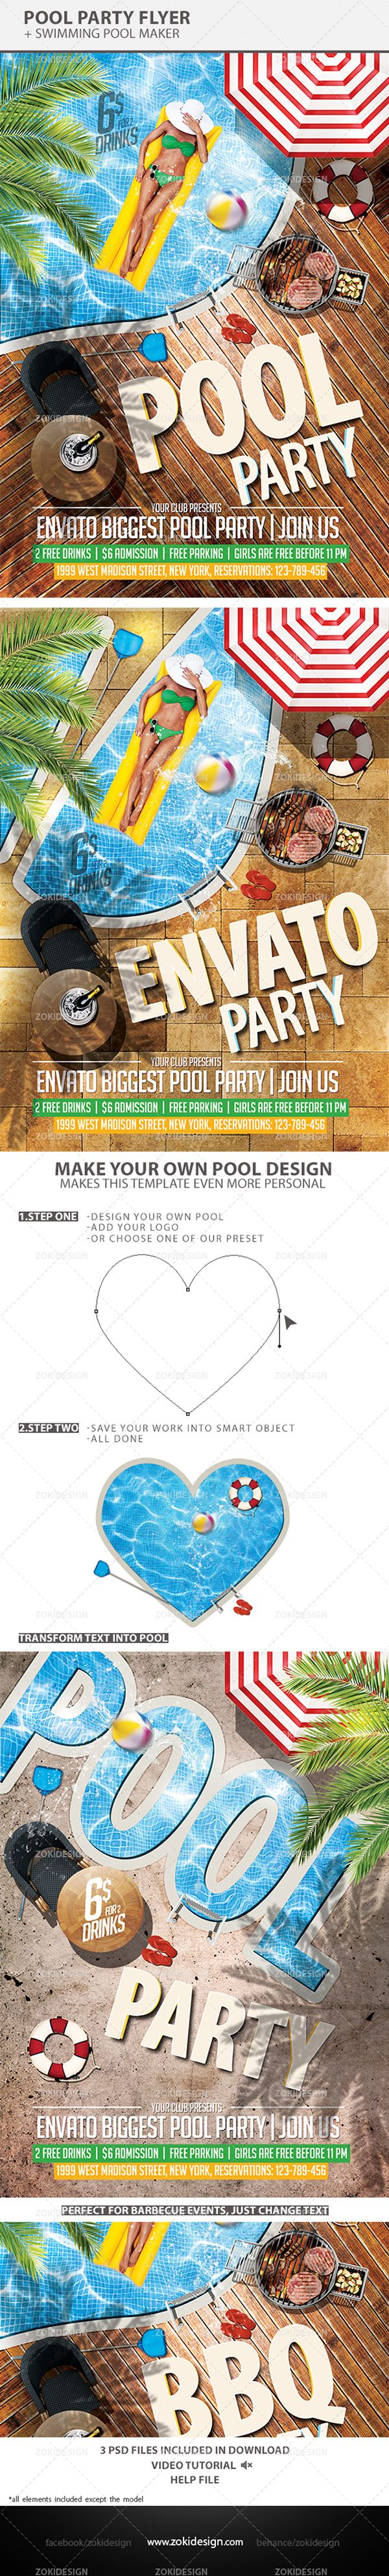 Pool Party Flyer Template by ZokiDesign, via Behance